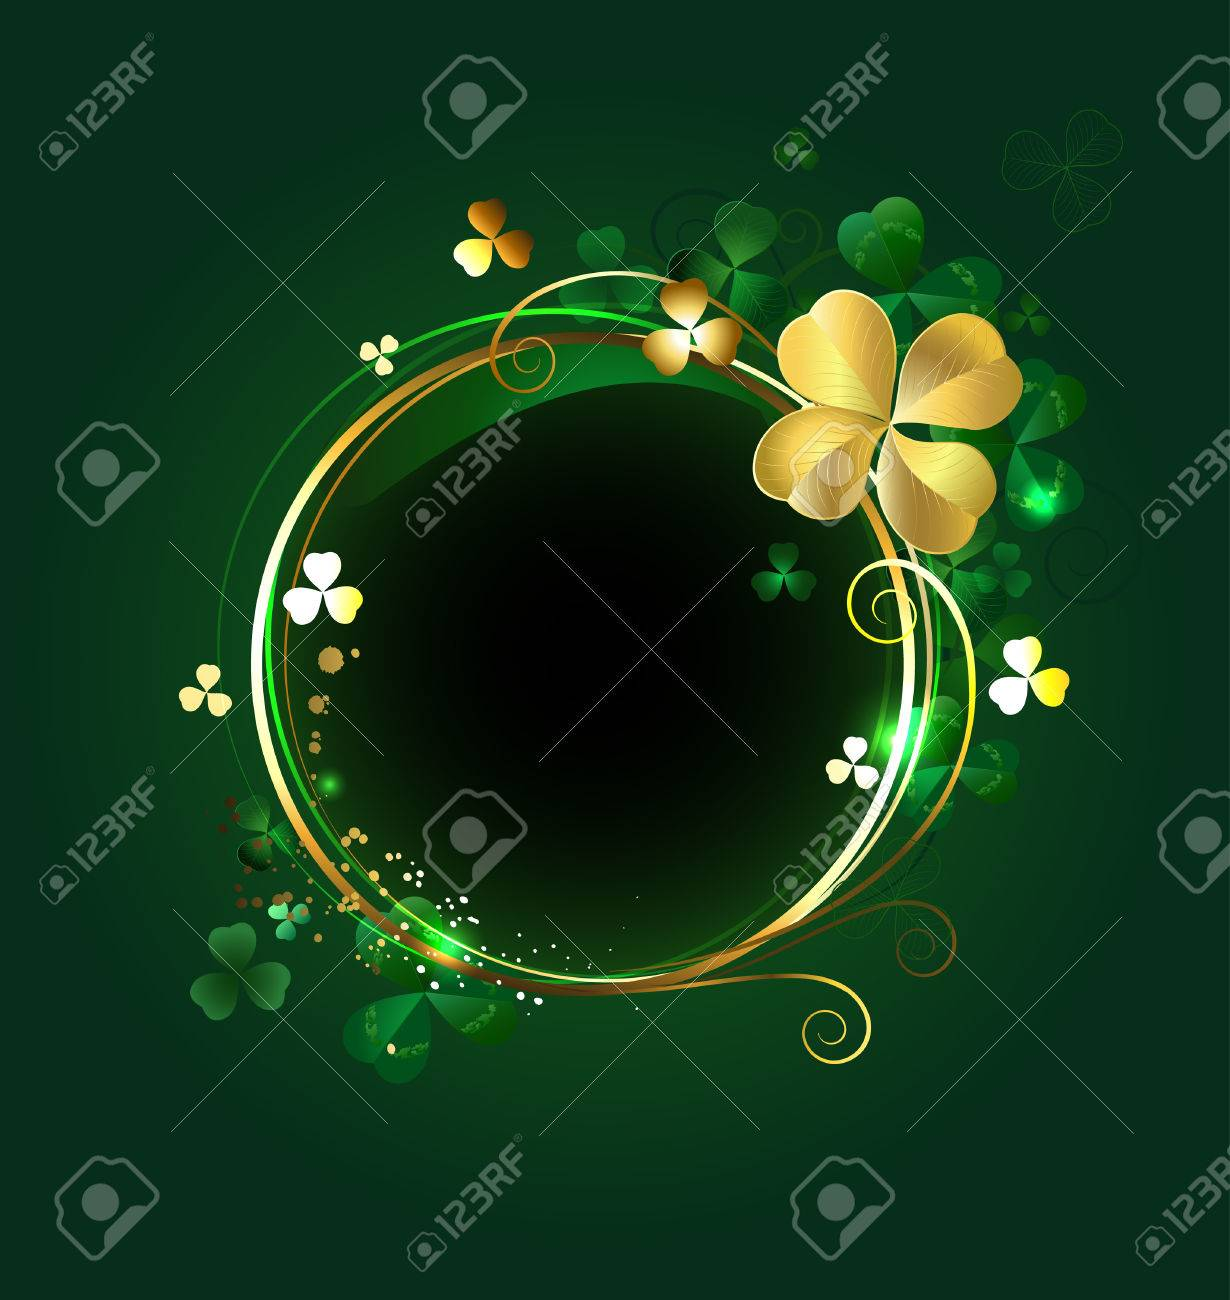 round golden banner with shamrocks and clover with four leaves on a green background - 25245655